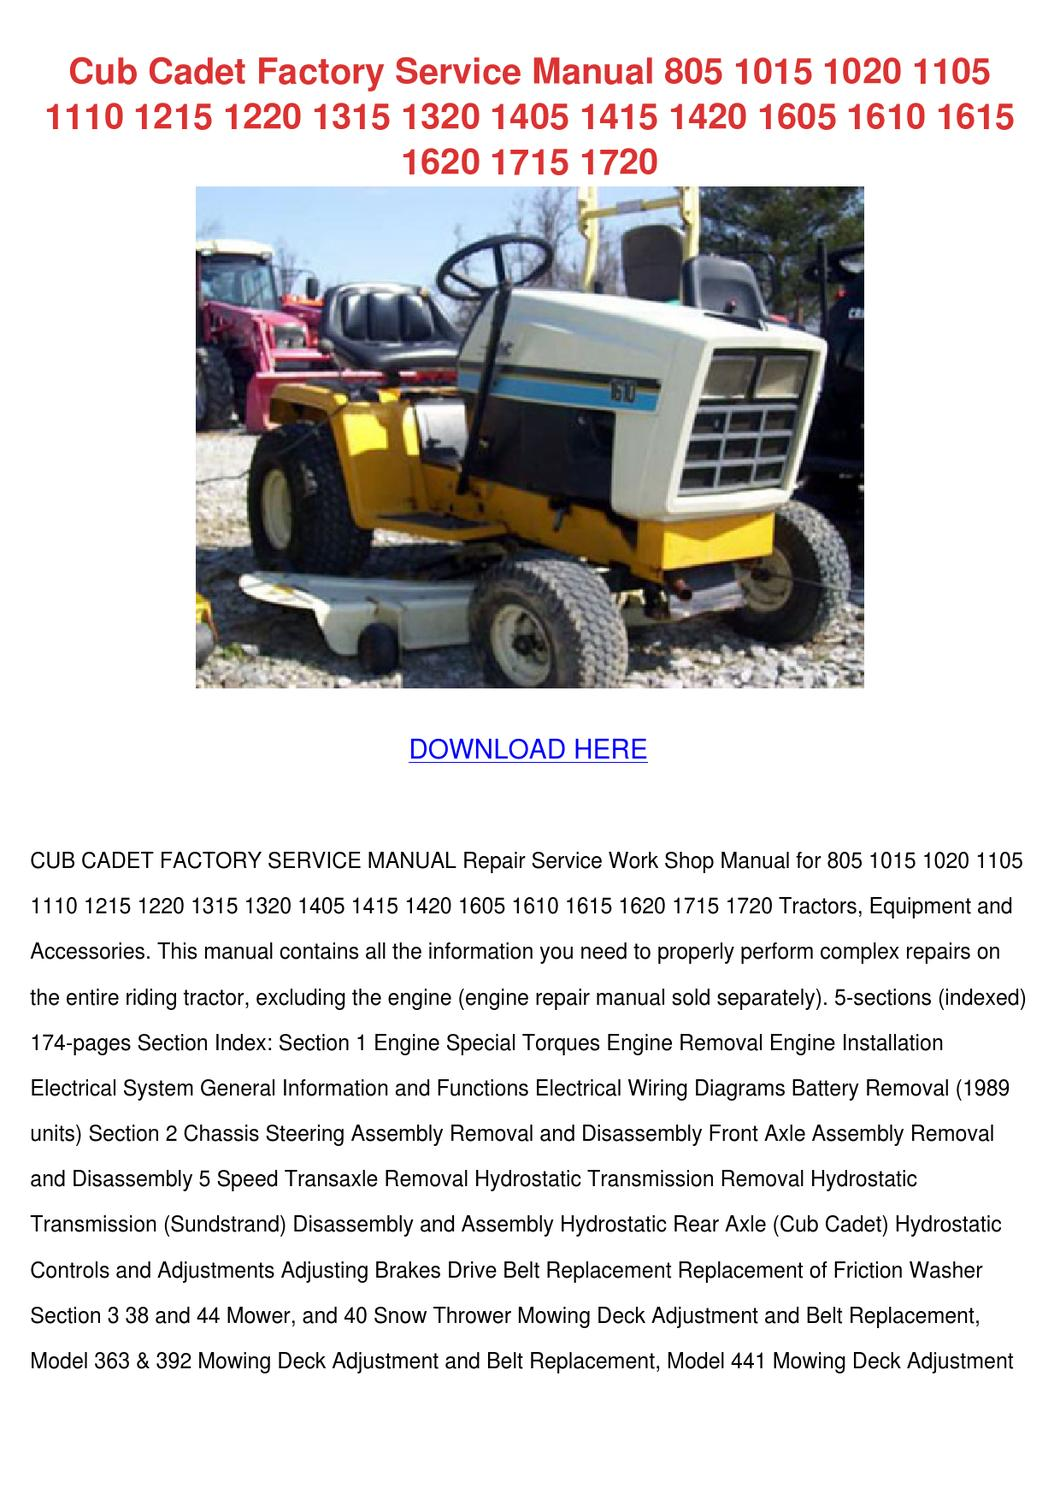 Wiring Diagram Cub Cadet 1415 Free Download 1440 Factory Service Manual 805 1015 102 By Ozella Blattner Issuu